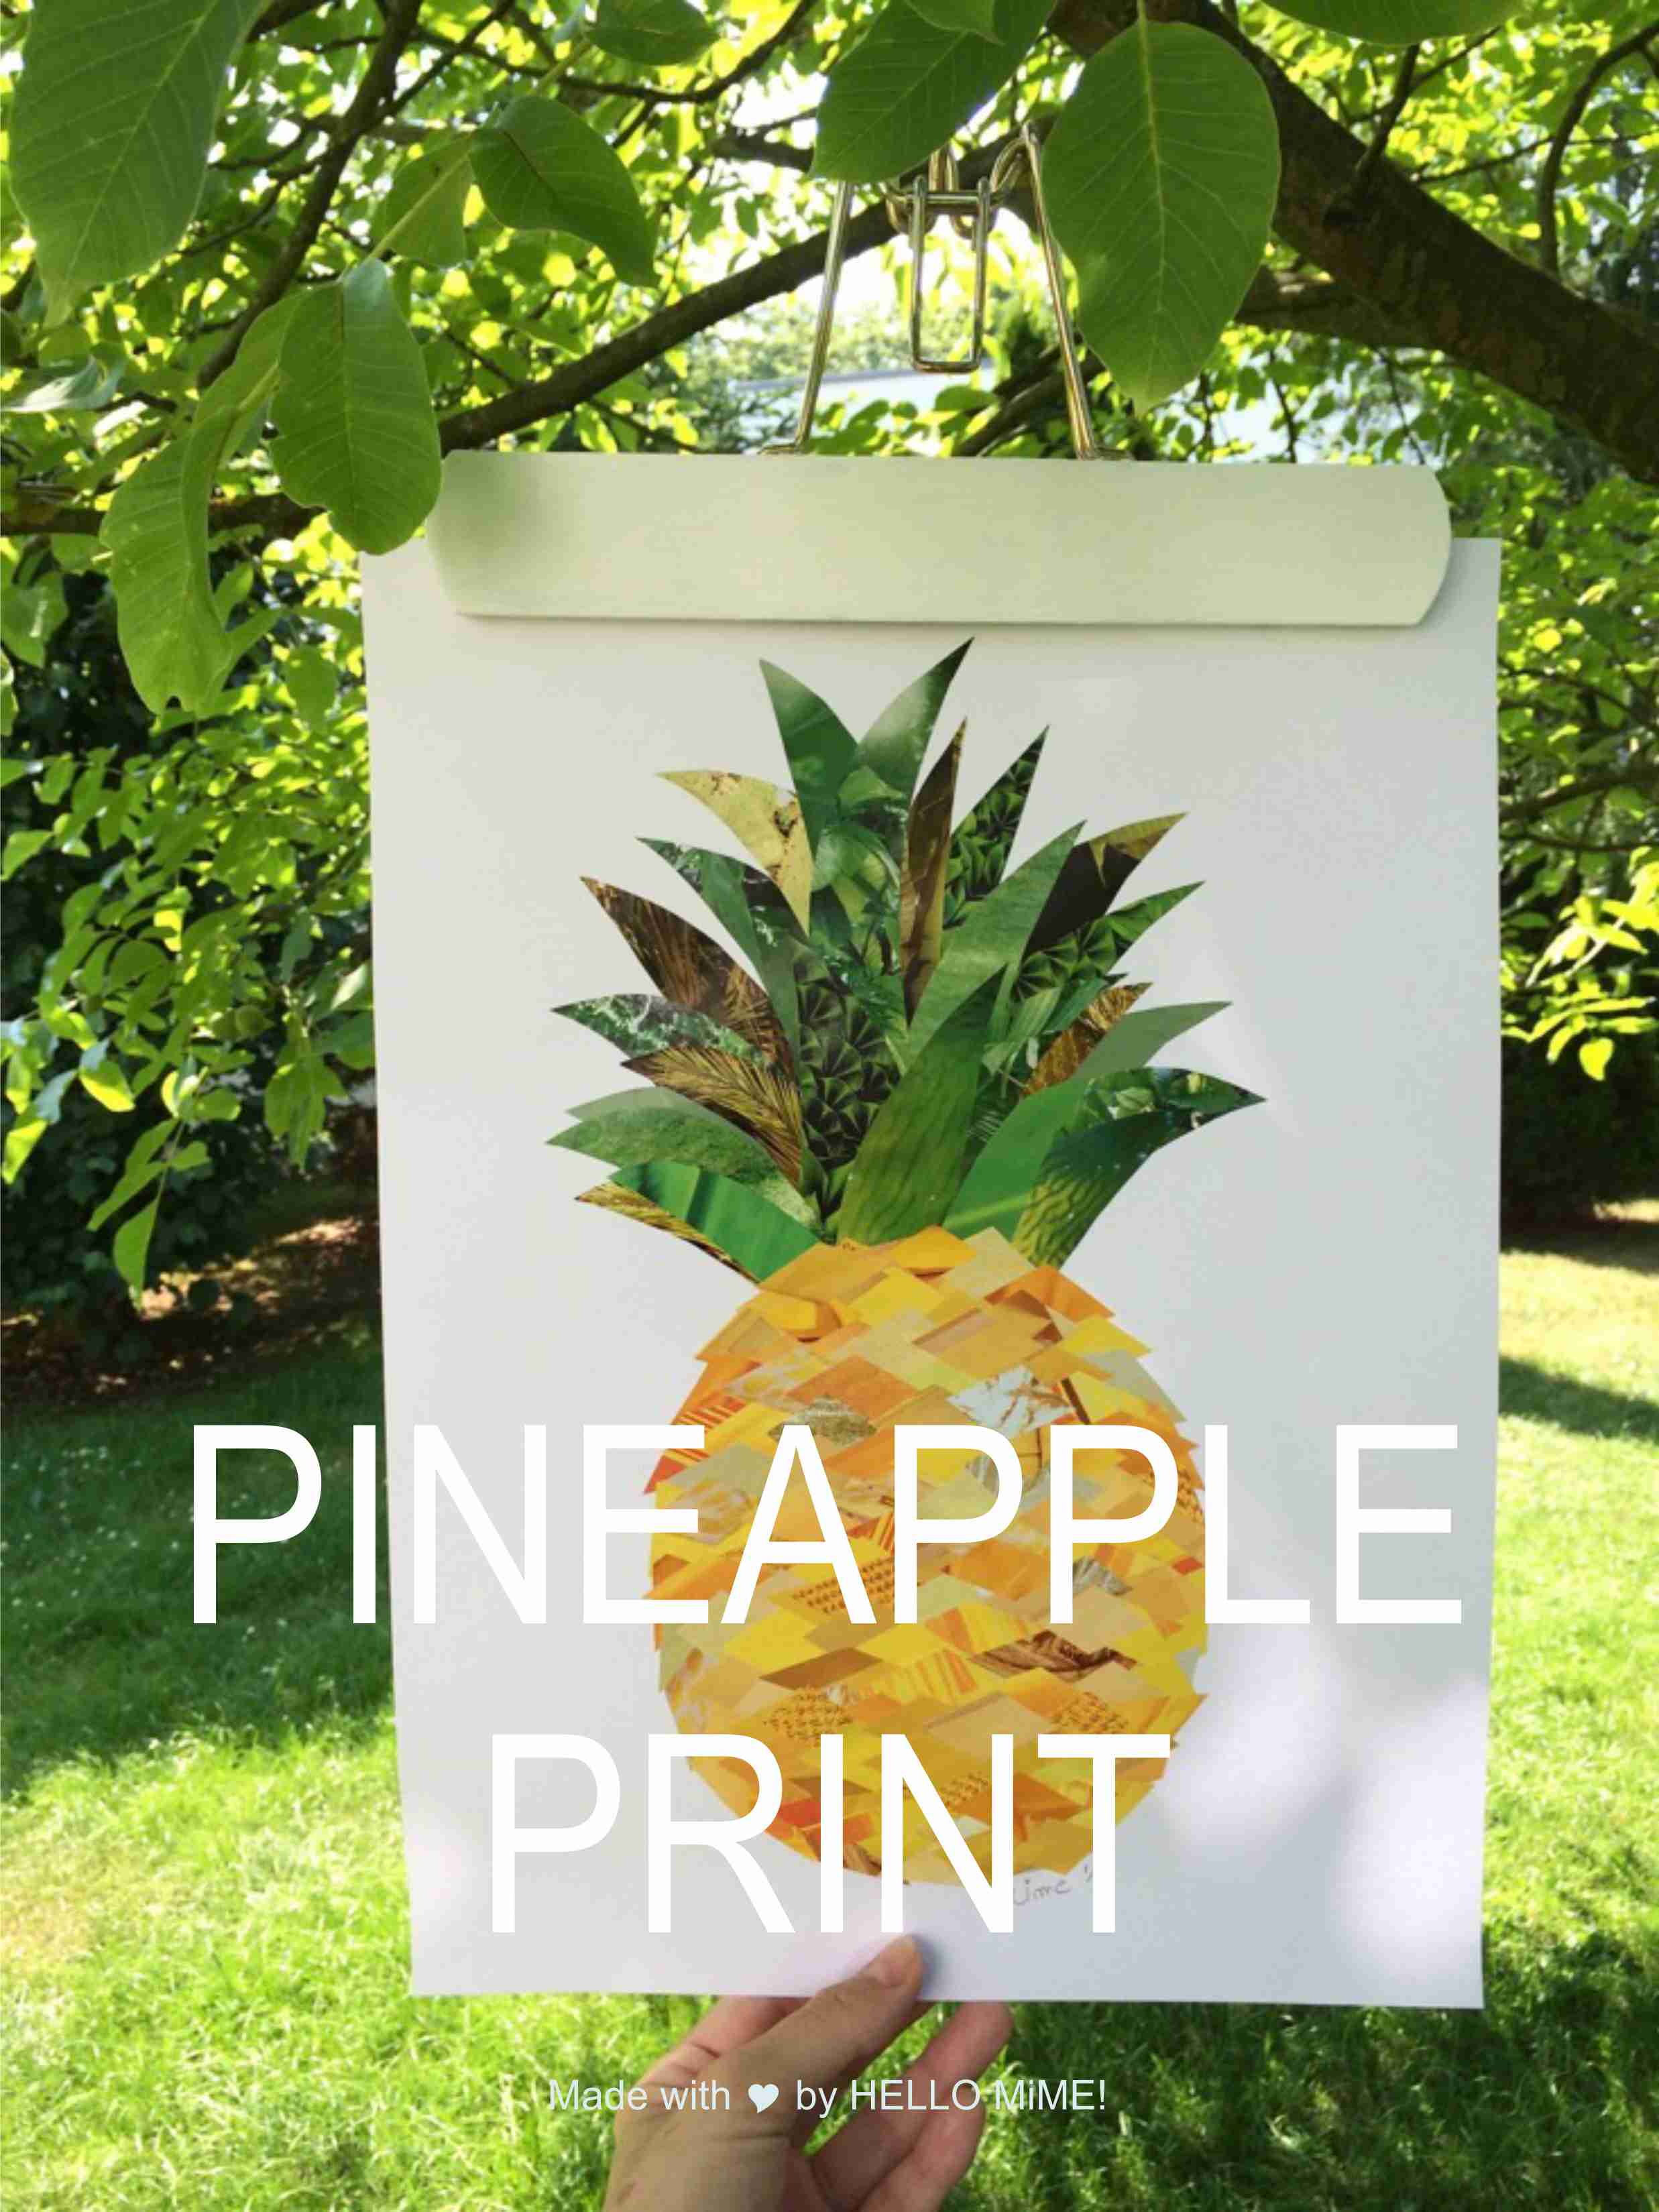 Pineapple print diy